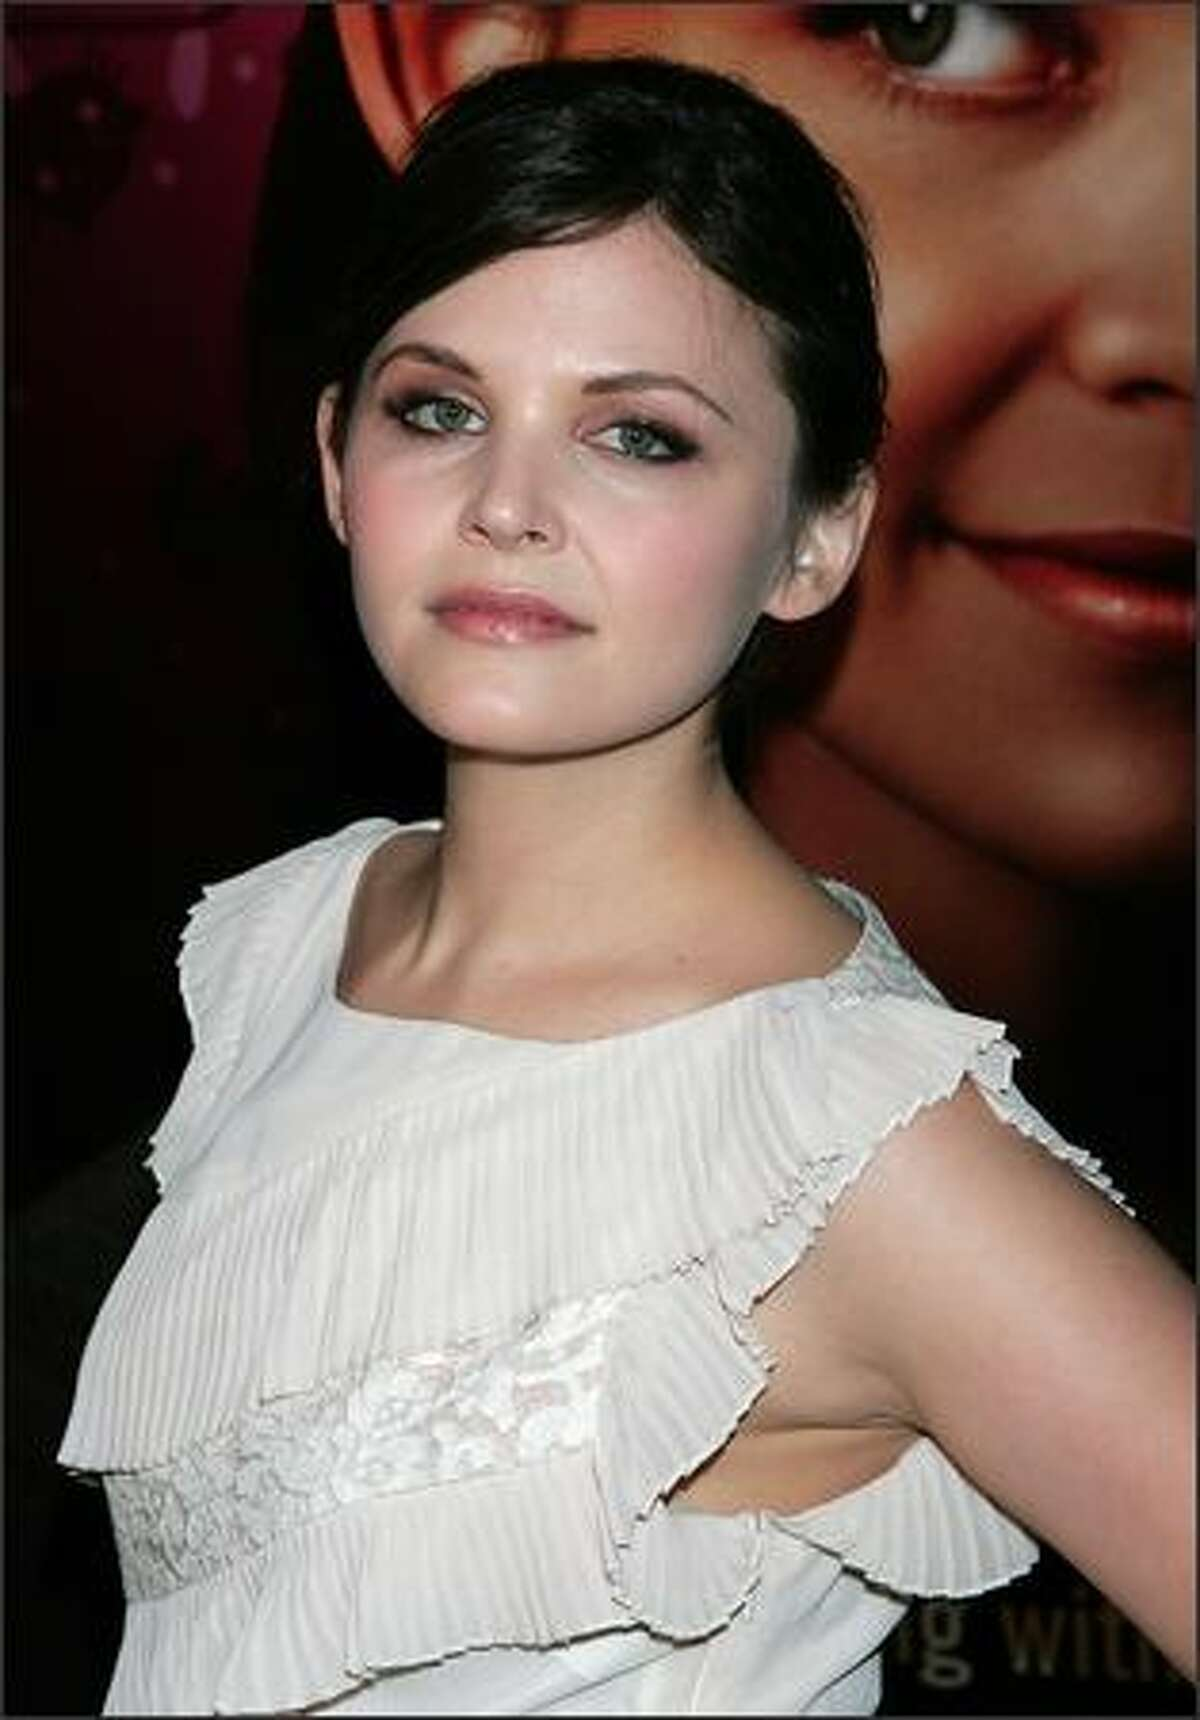 Actress Ginnifer Goodwin attends the premiere of HBO's